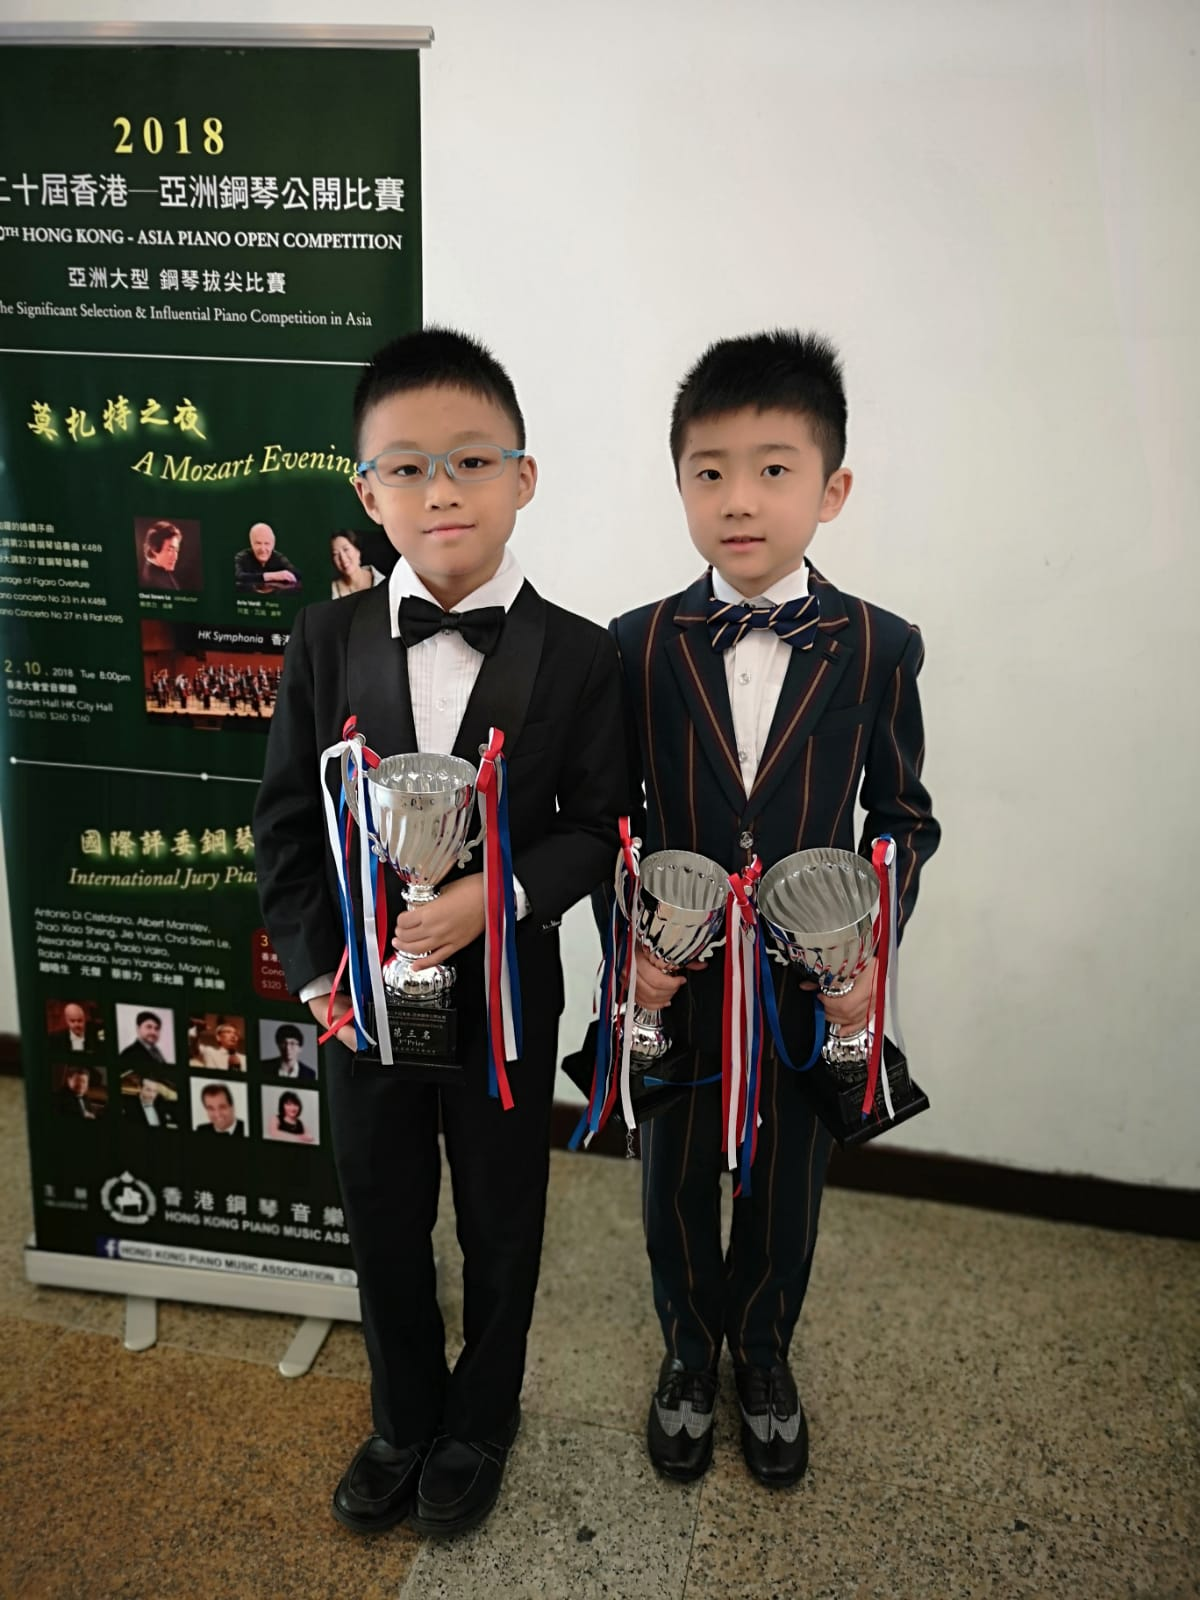 Nicholas Chin (left) and Cao Jun Wei (right) with their trophies.